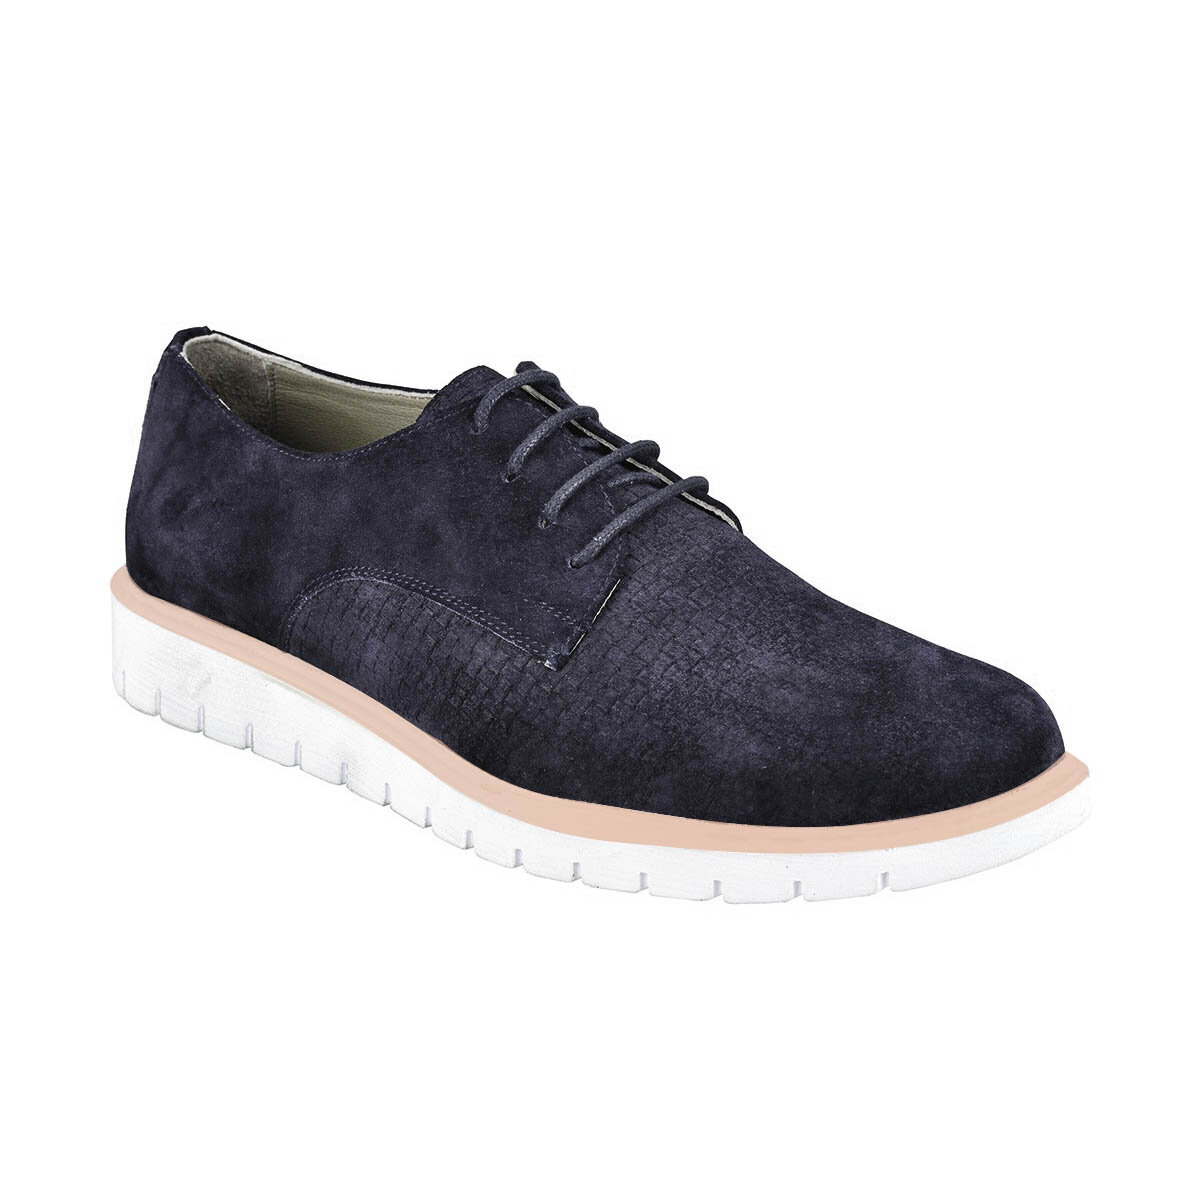 FLO 55506-1 M 1910 Navy Blue Men 'S Modern Shoes-Styles